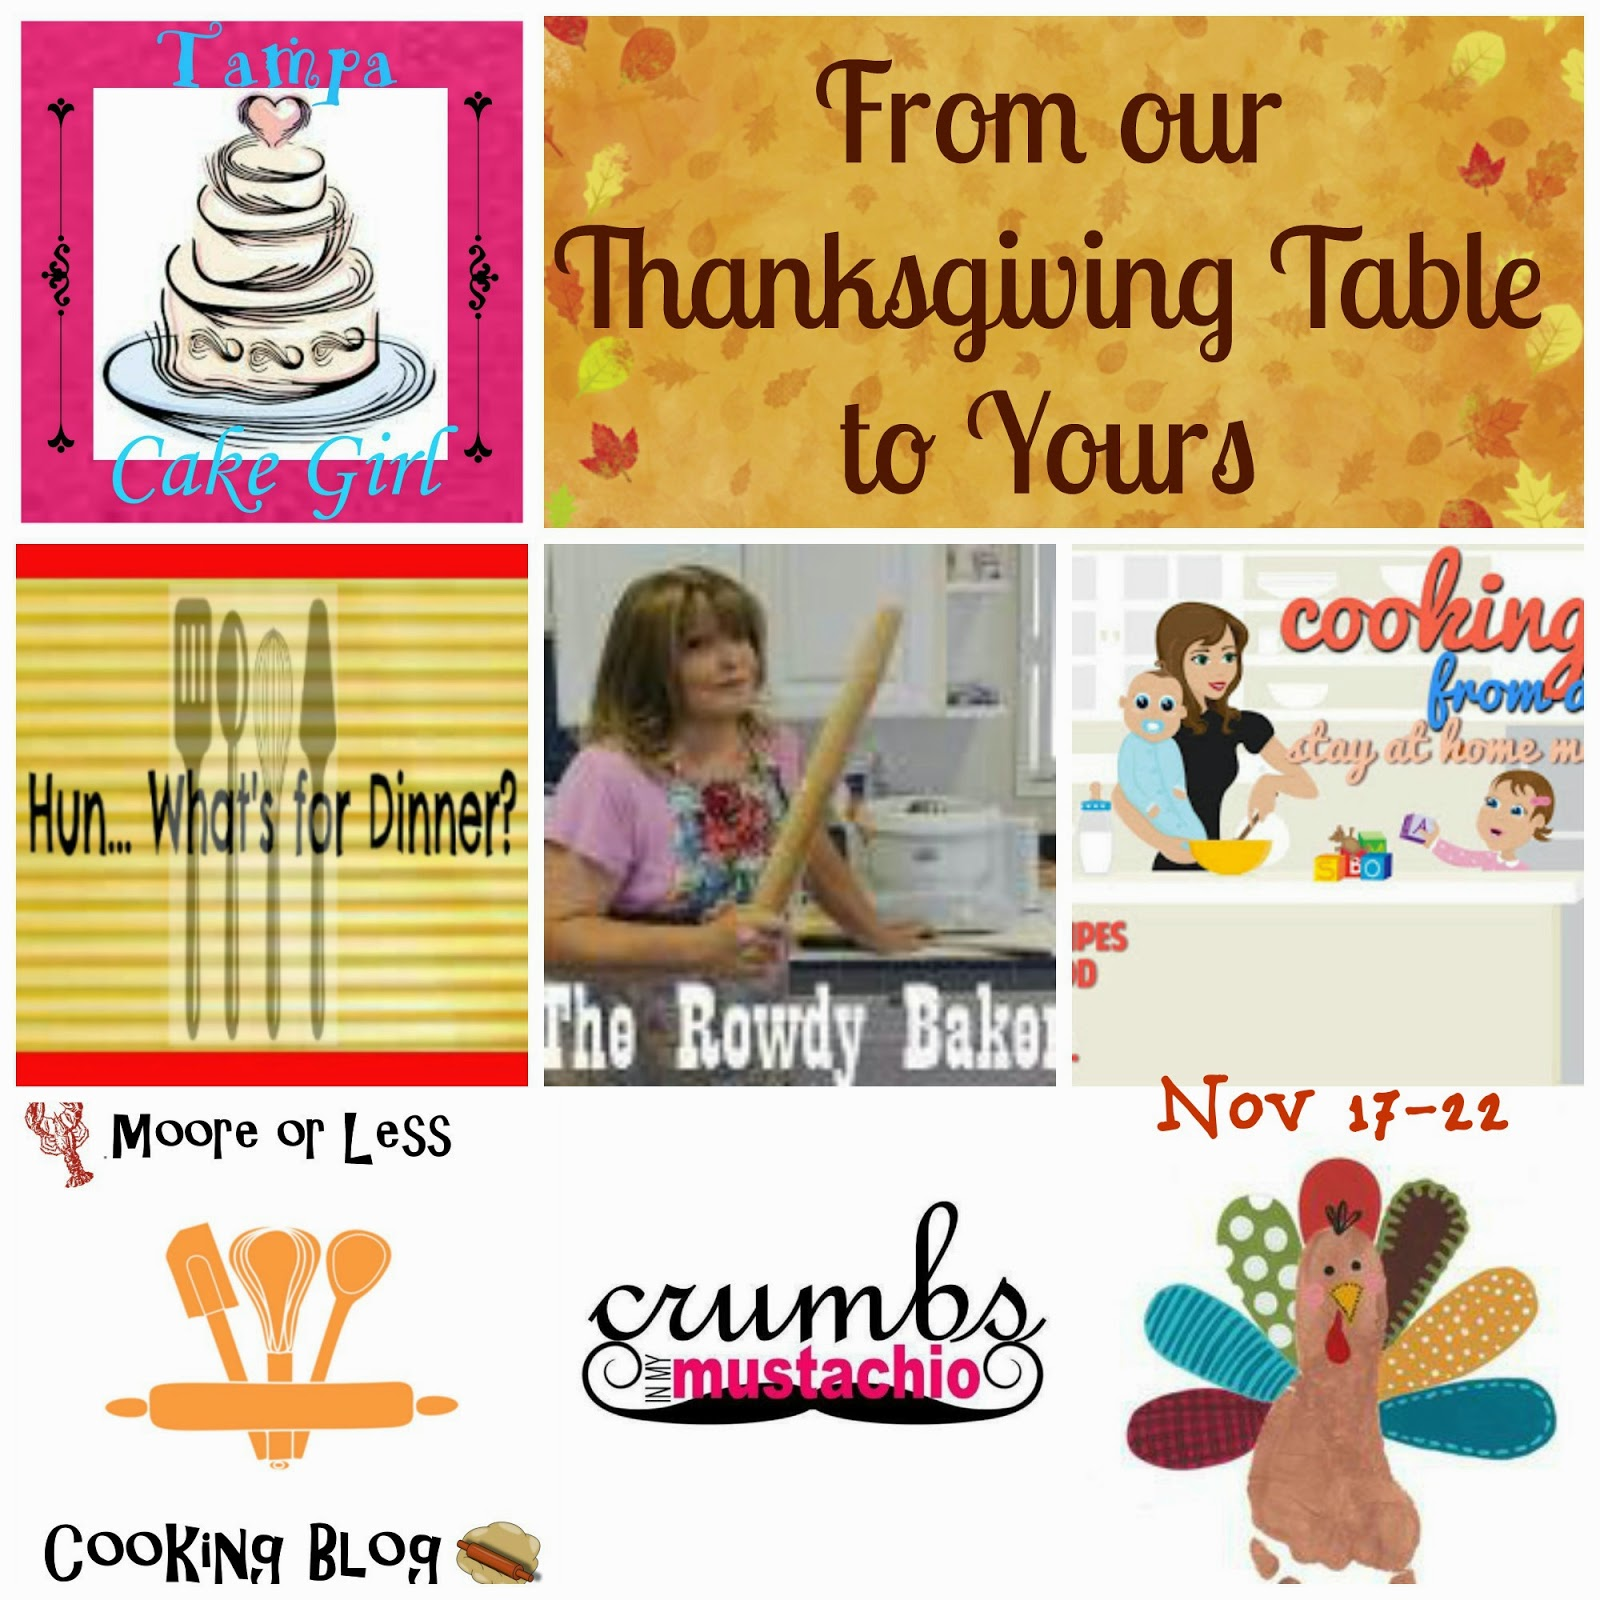 Hun... What's for Dinner? From Our Thanksgiving Table To Yours- Thanksgiving Recipe Round Up